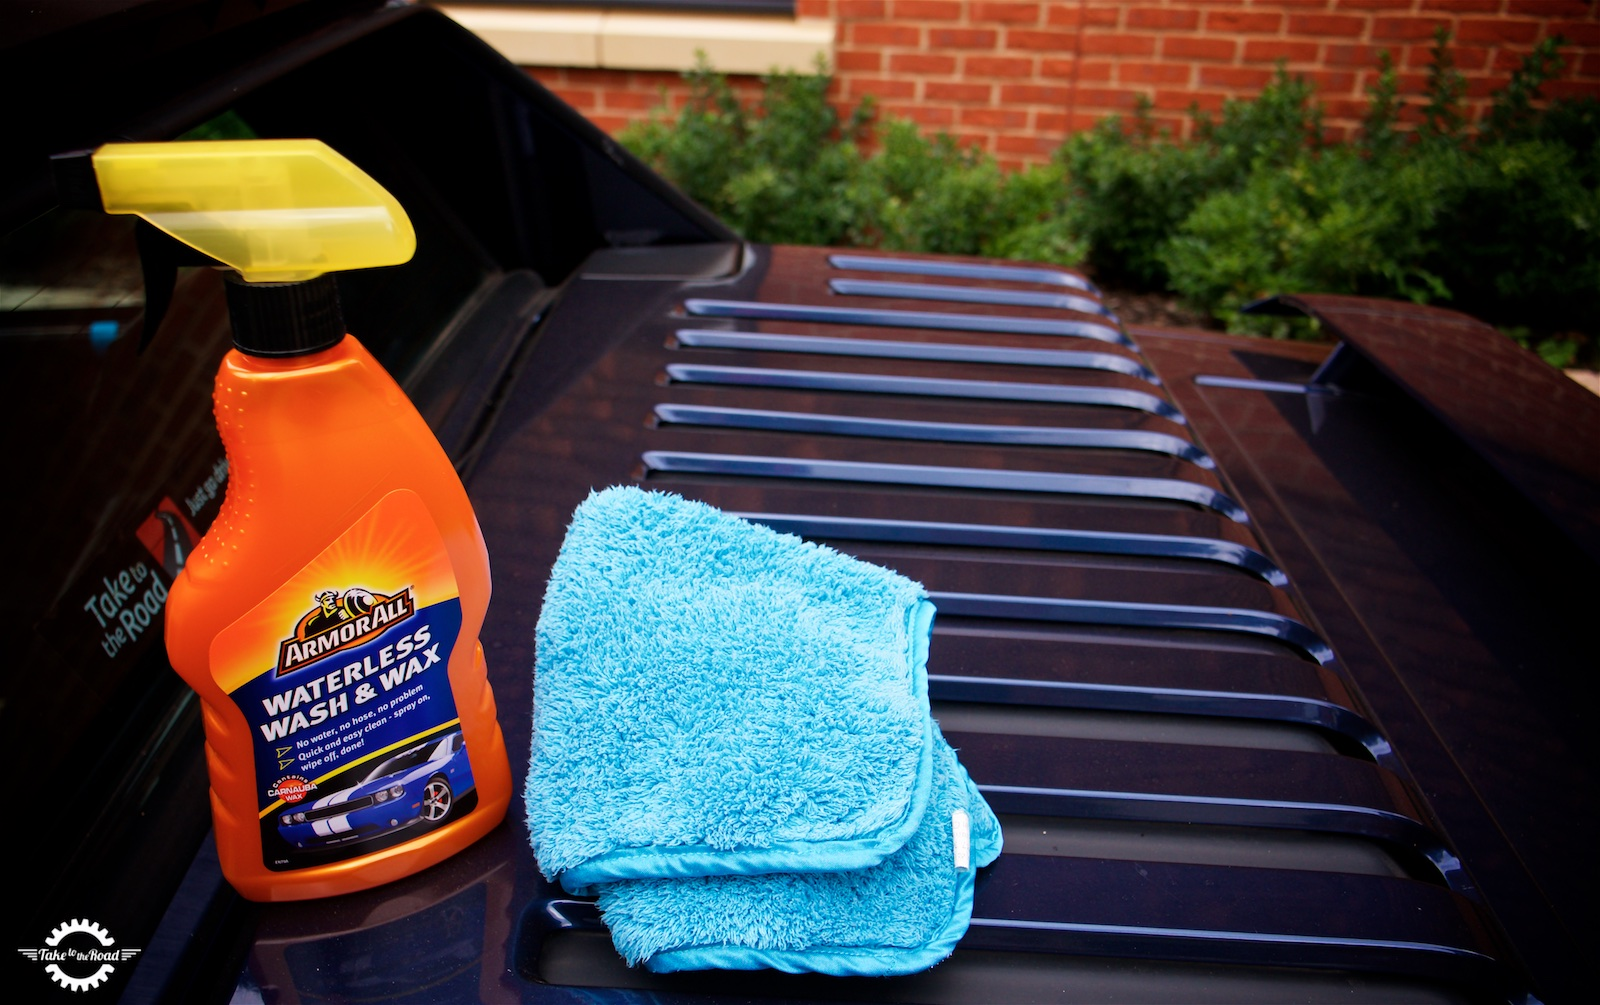 Take to the Road Armour All Waterless Wash and Wax Product Test